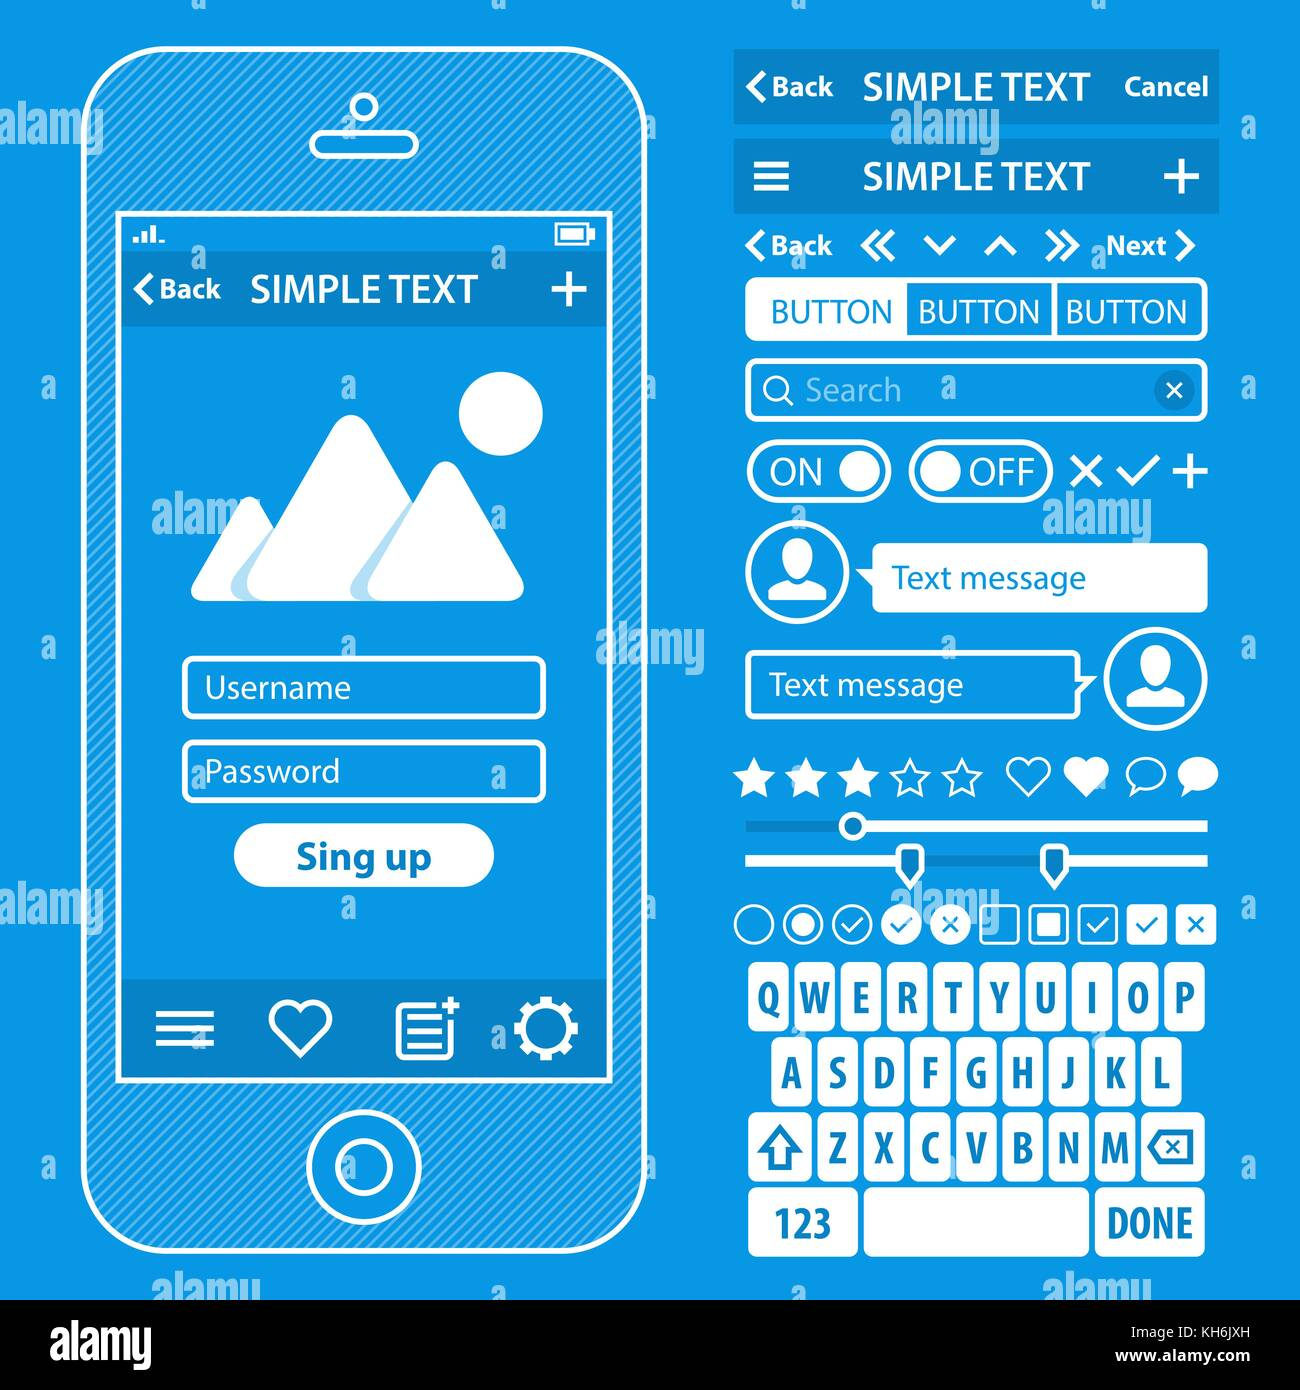 Ui elements blueprint design vector kit in trendy color with ui elements blueprint design vector kit in trendy color with simple stock vector art illustration vector image 165489033 alamy malvernweather Images